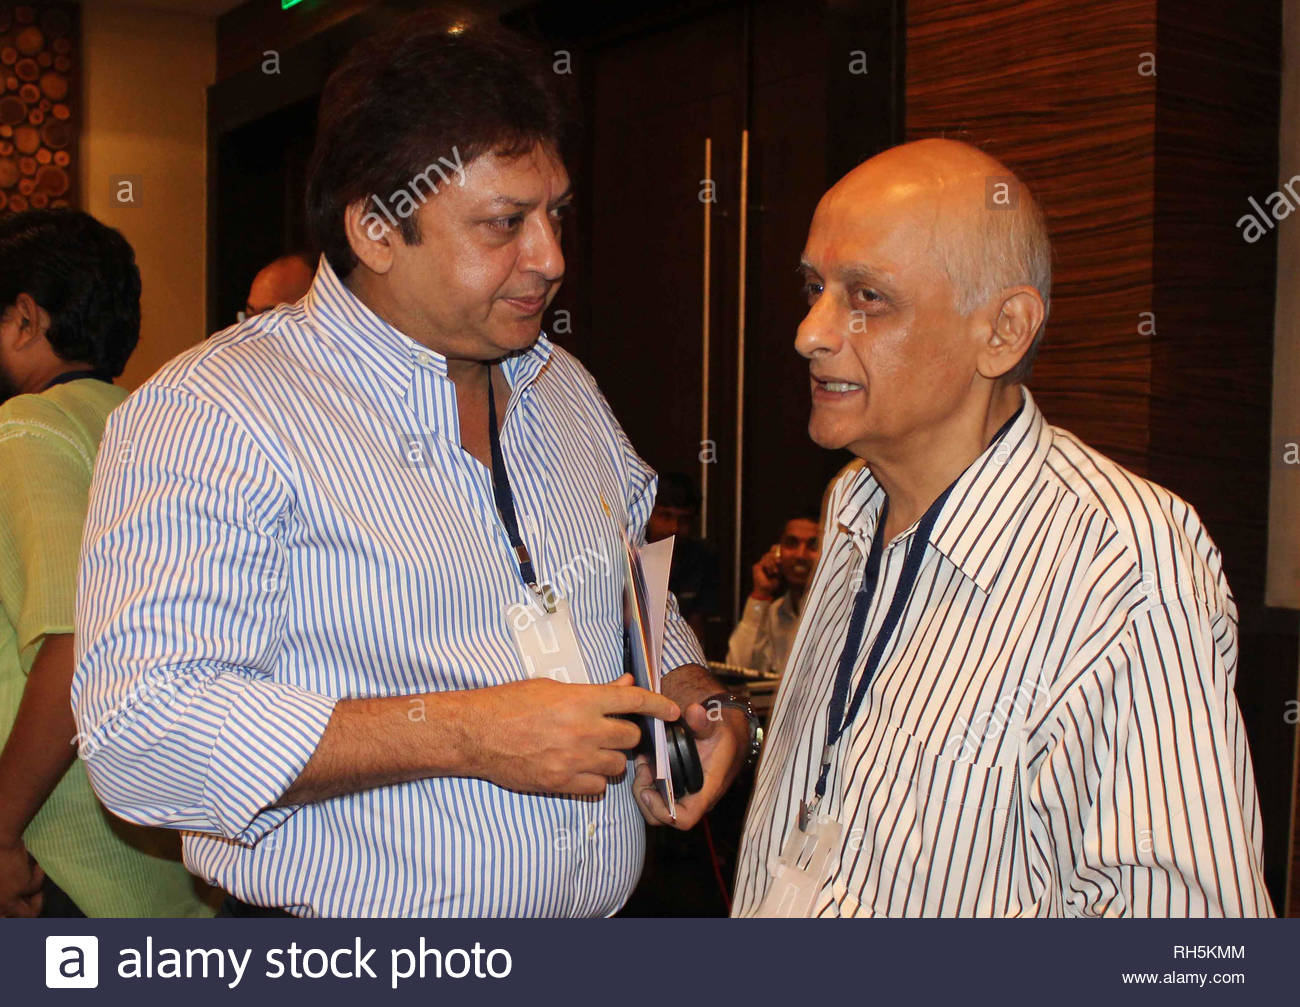 Sashi Ranjan with Bollywood filmmaker Mukesh Bhatt during a panel discussion on 'Building Bridges between creative communities & and priorities of our time' in Mumbai, India on July 18, 2013. (Amol Kamble) - Stock Image